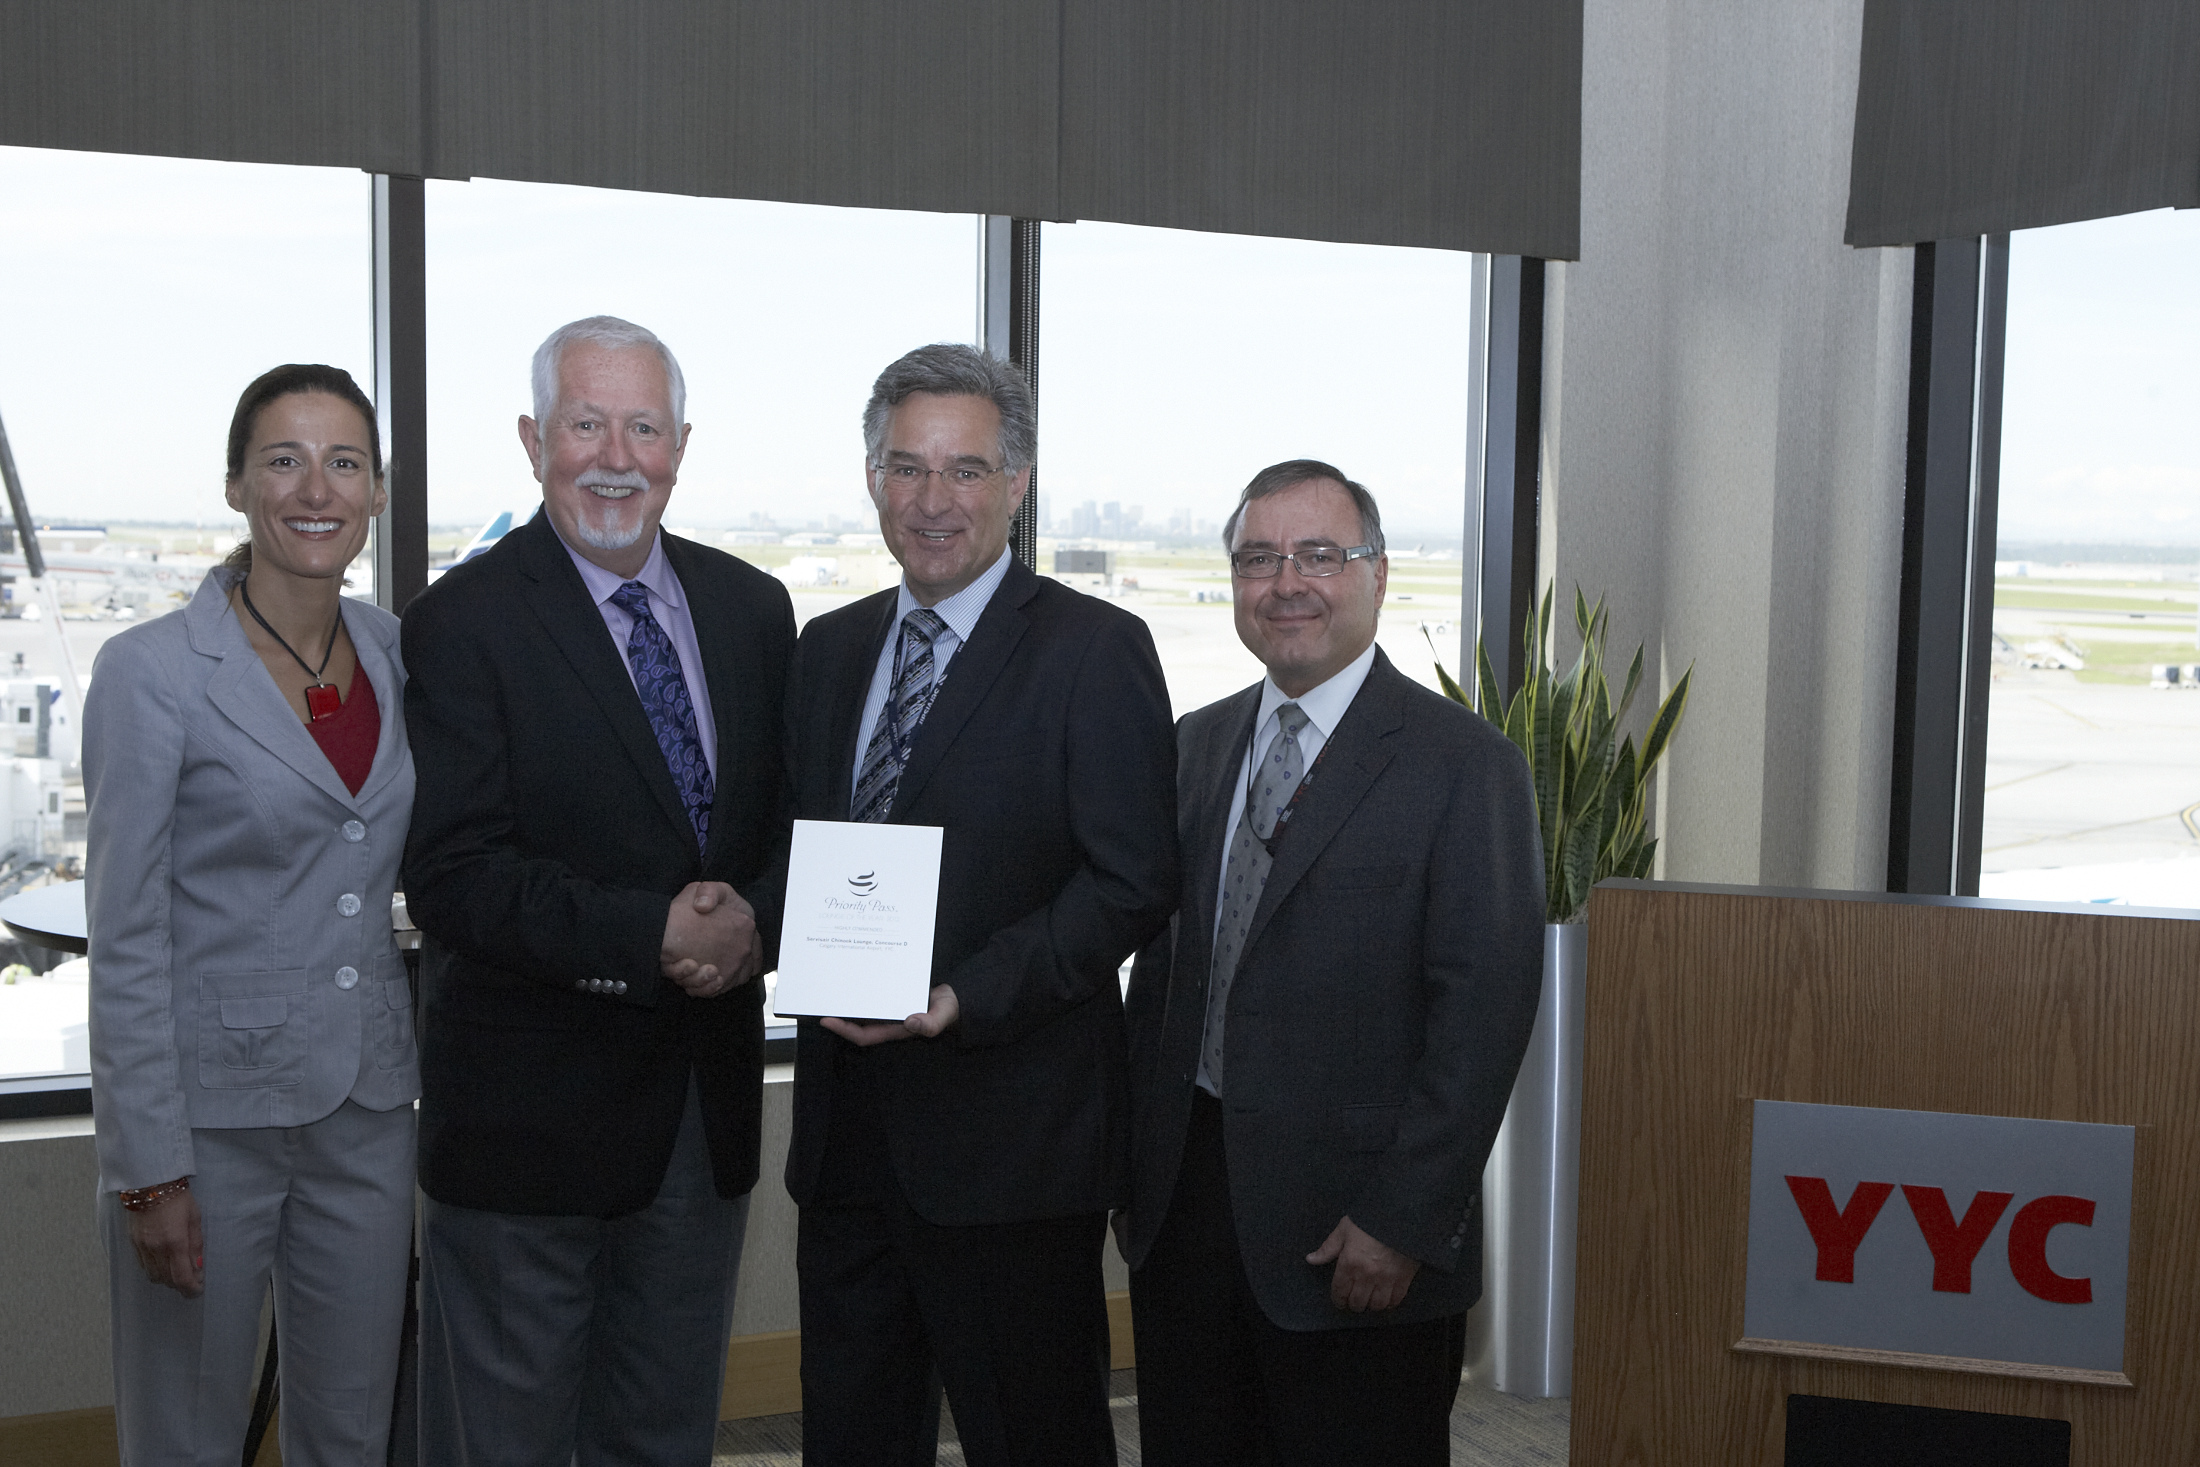 Photo of an award ceremony at the Calgary International Airport